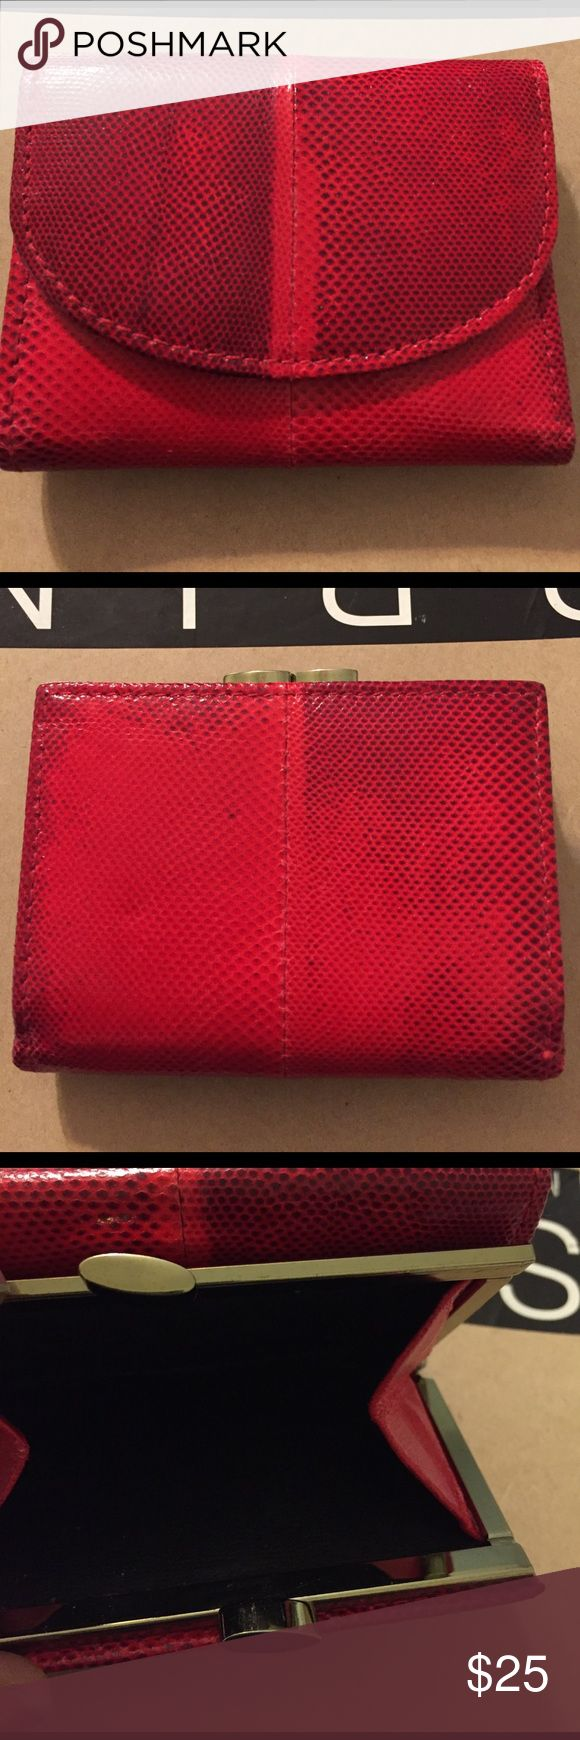 Neiman Marcus Vintage red snake skin wallet Real snake skin. Has compartment for cash, plastic is holder, compartment with 4 credit card slots, business cards. Change compartment with brass closure on the outside. 4x4x 1 Neiman Marcus Bags Wallets